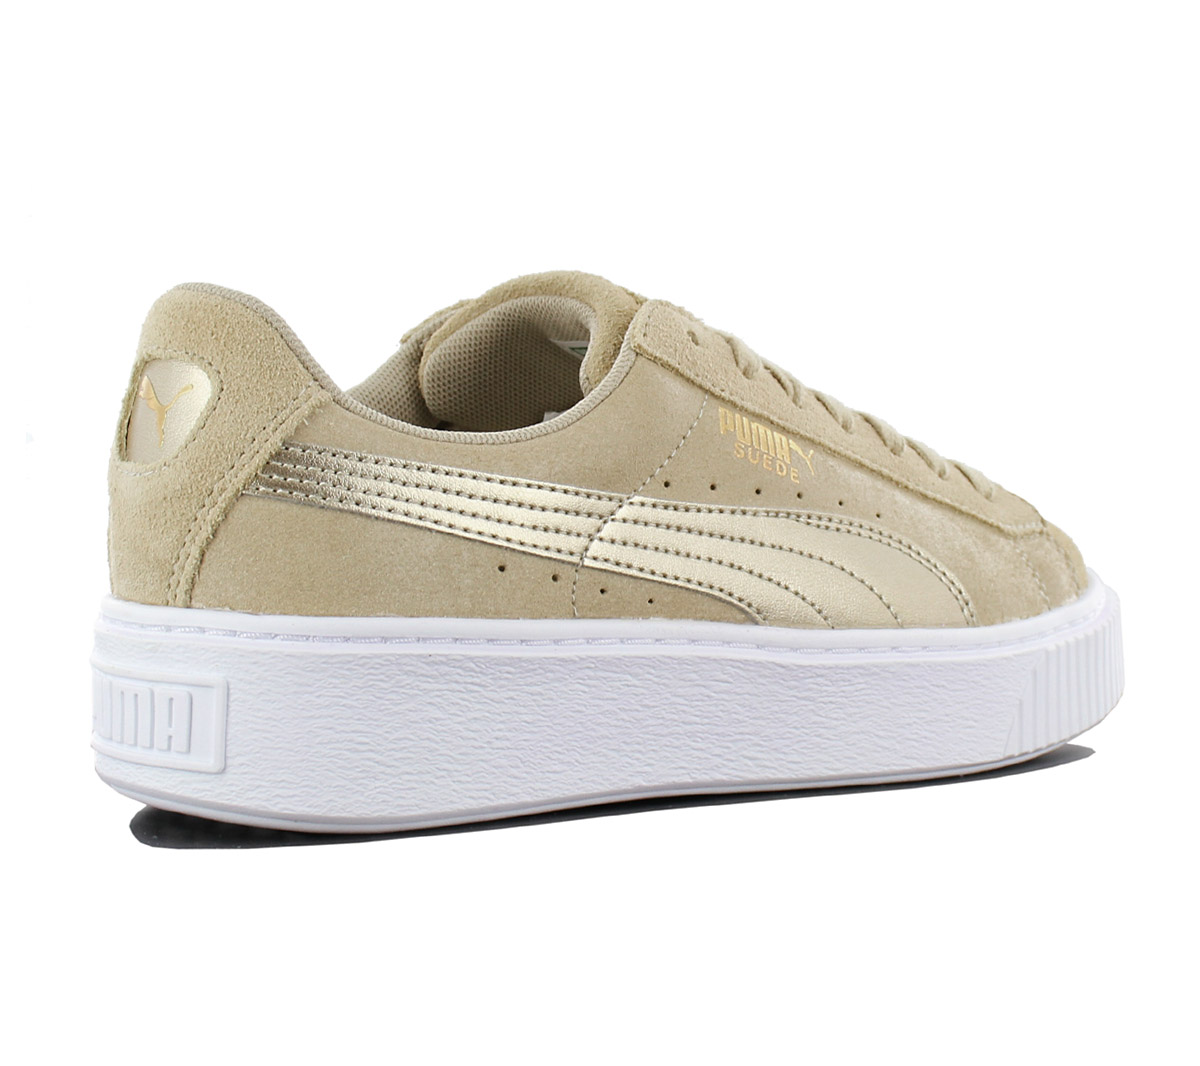 347c6ed5b3d3 ... Picture 3 of 6  Picture 4 of 6. 3. NEW Puma Suede Platform Safari Wns  364594-01 Women ...